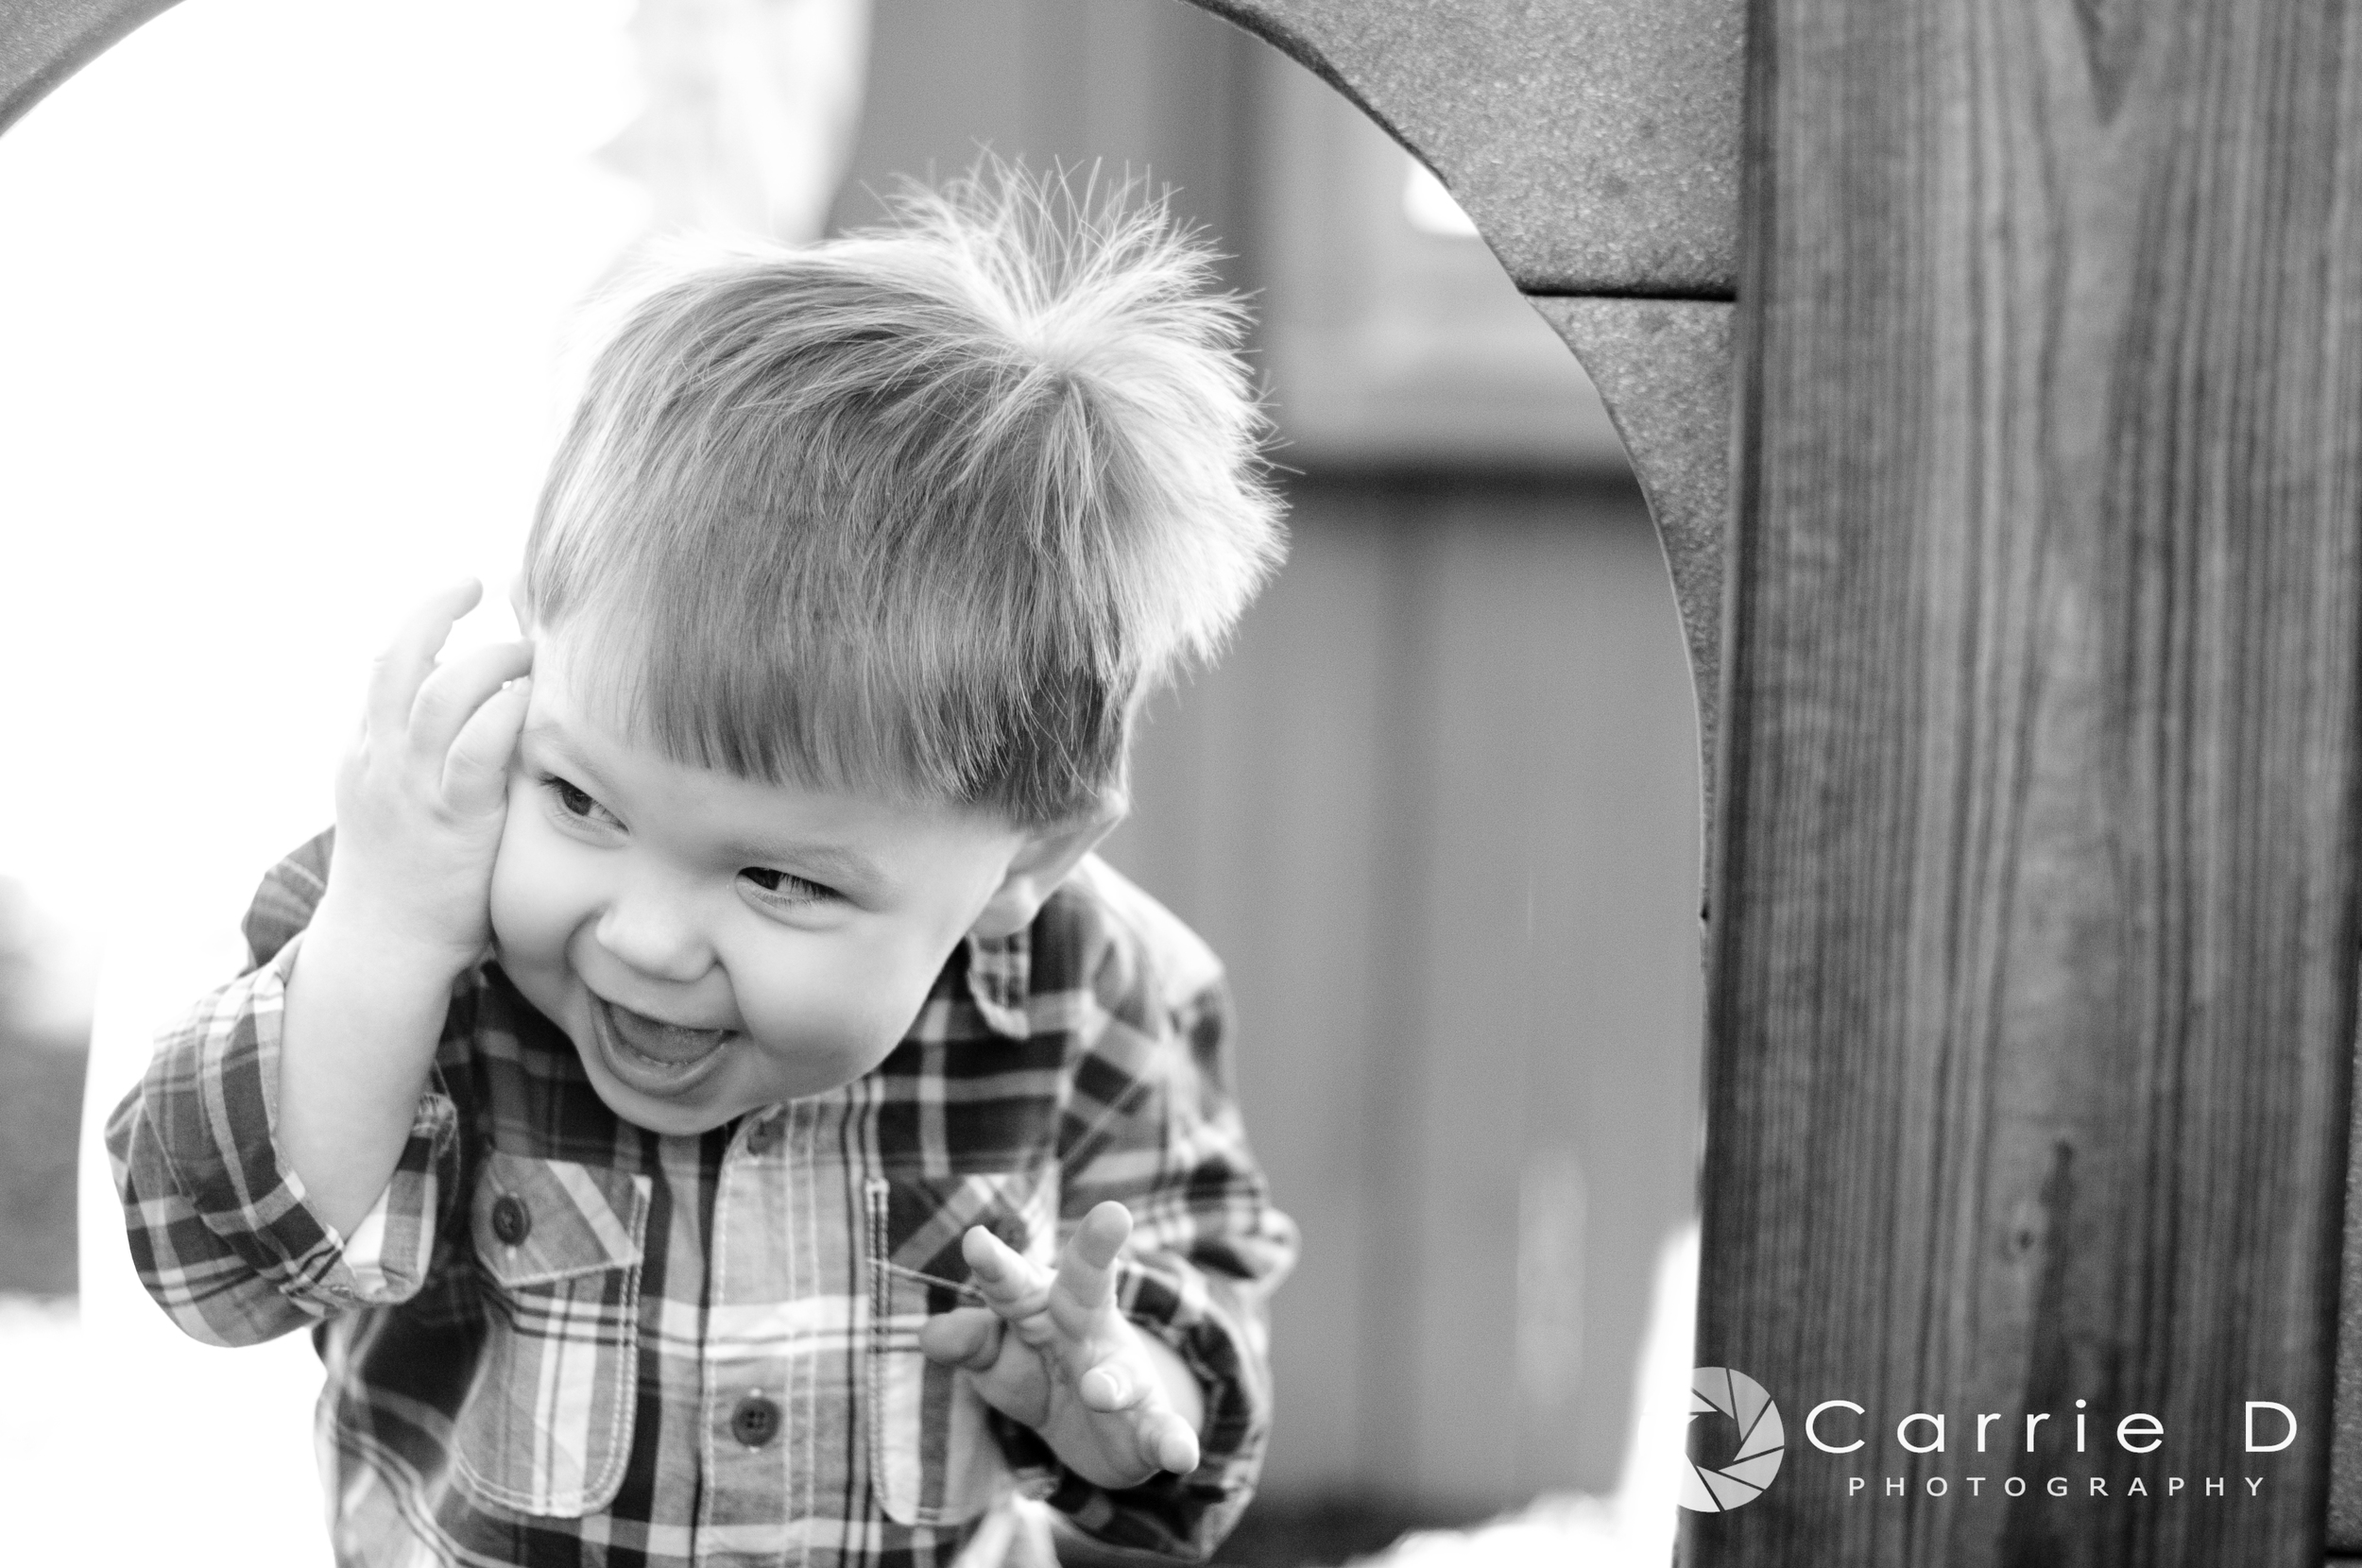 Harford County Child Photographer - Twin Photographer - Natural Light Photographer - Natural Light Twin Photography - Lifestyle Photography - Harford County Lifestyle Photographer - Harford County Twin Photographer